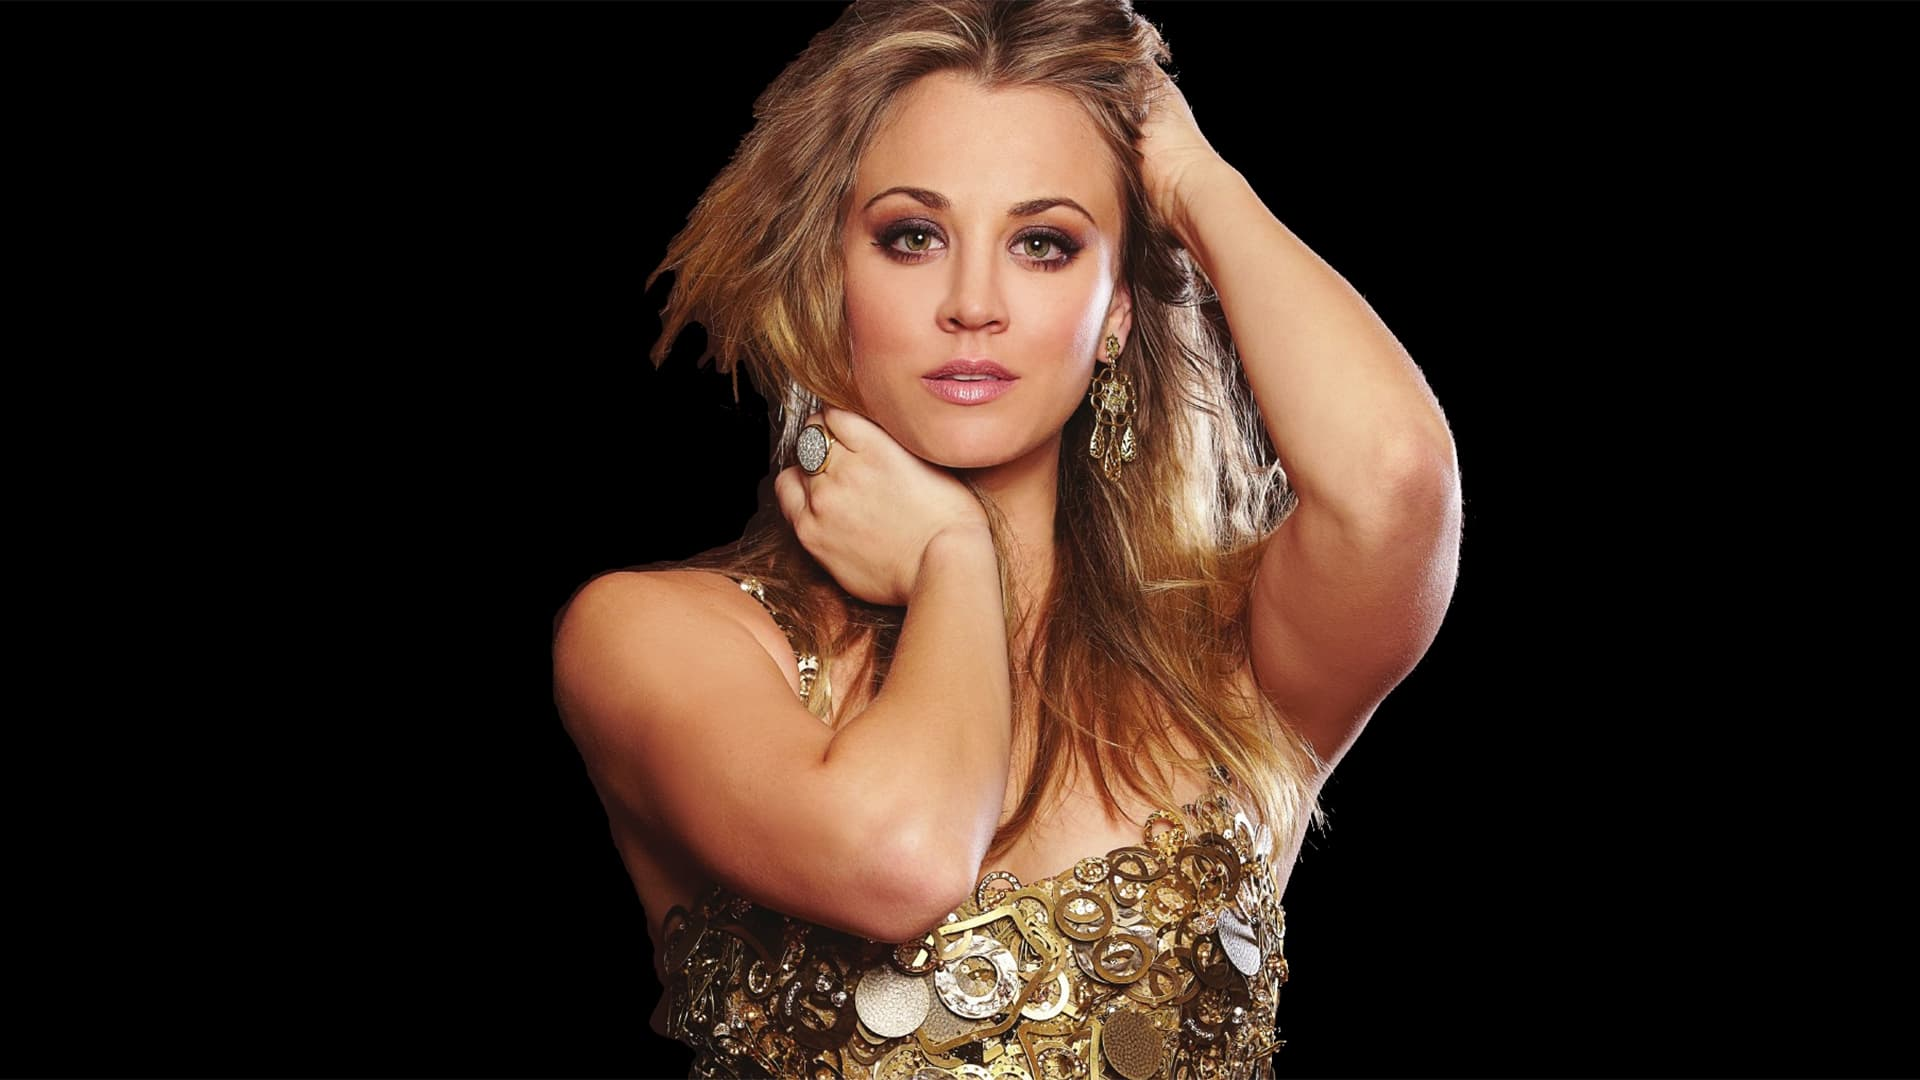 Kaley Cuoco black background High Resolution wallpaper